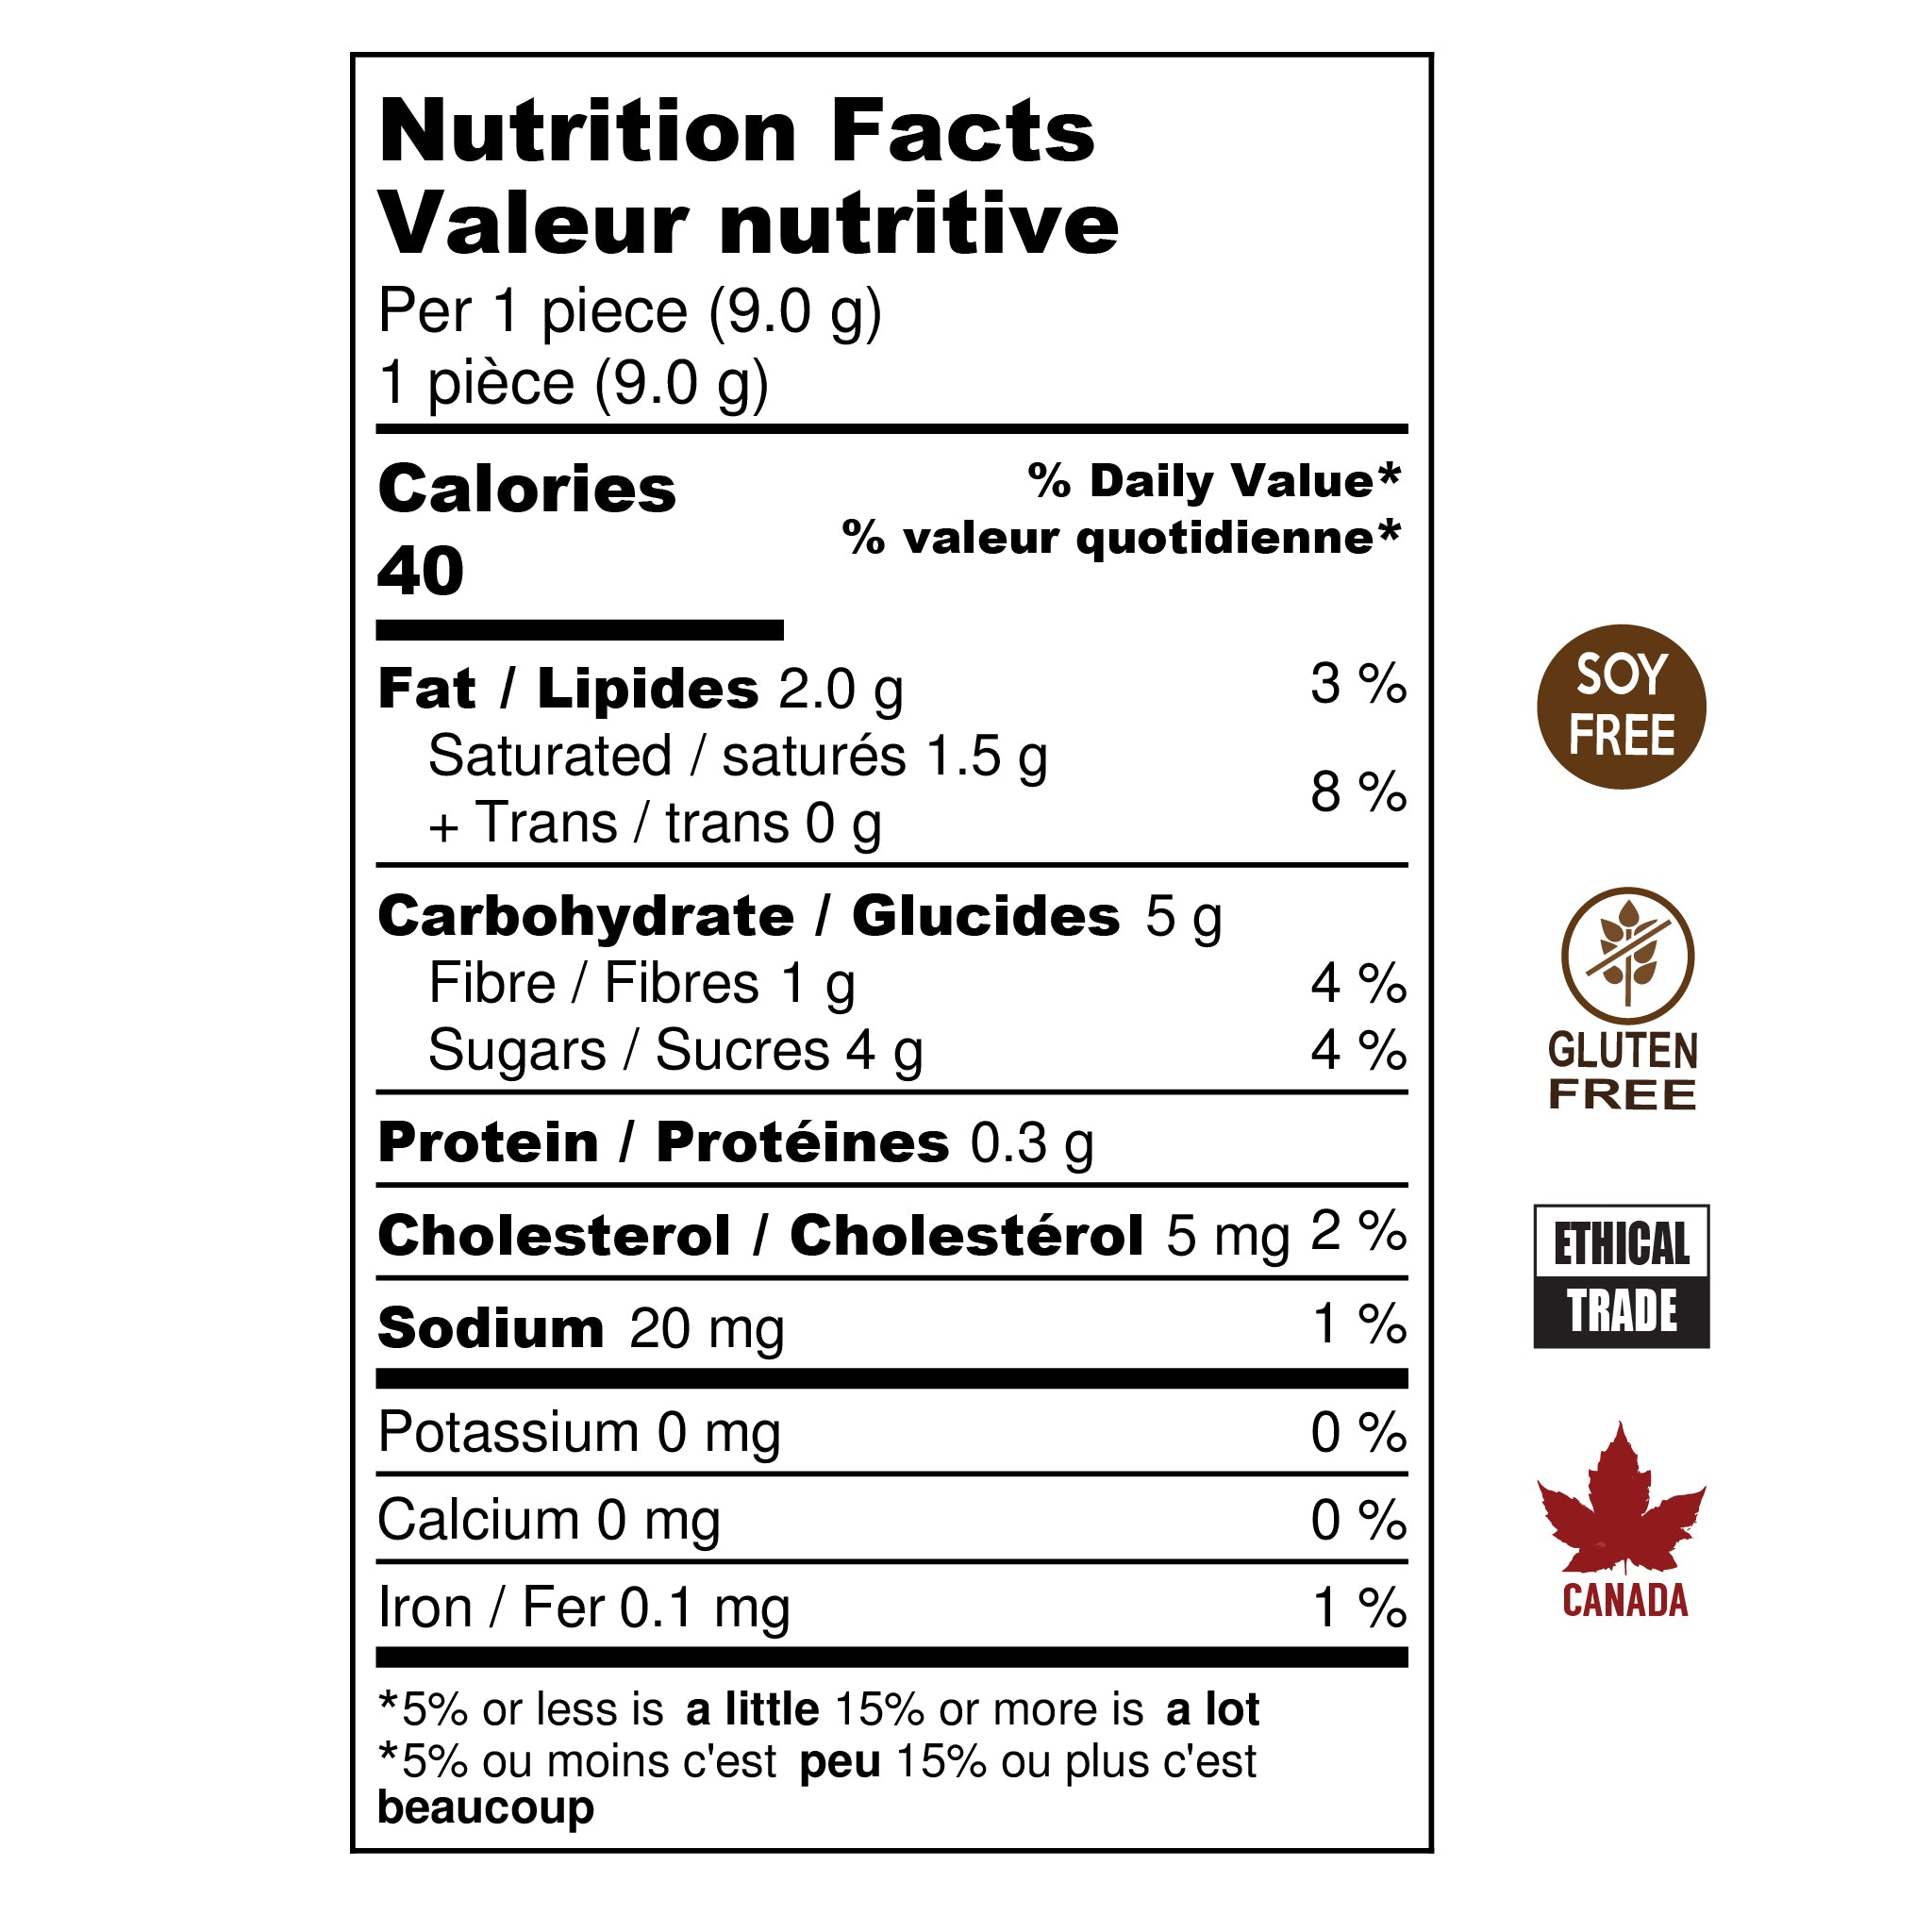 Box of 6 Caramels nutritional information. Soy Free, Gluten Free, Ethical Trade, Made in Canada